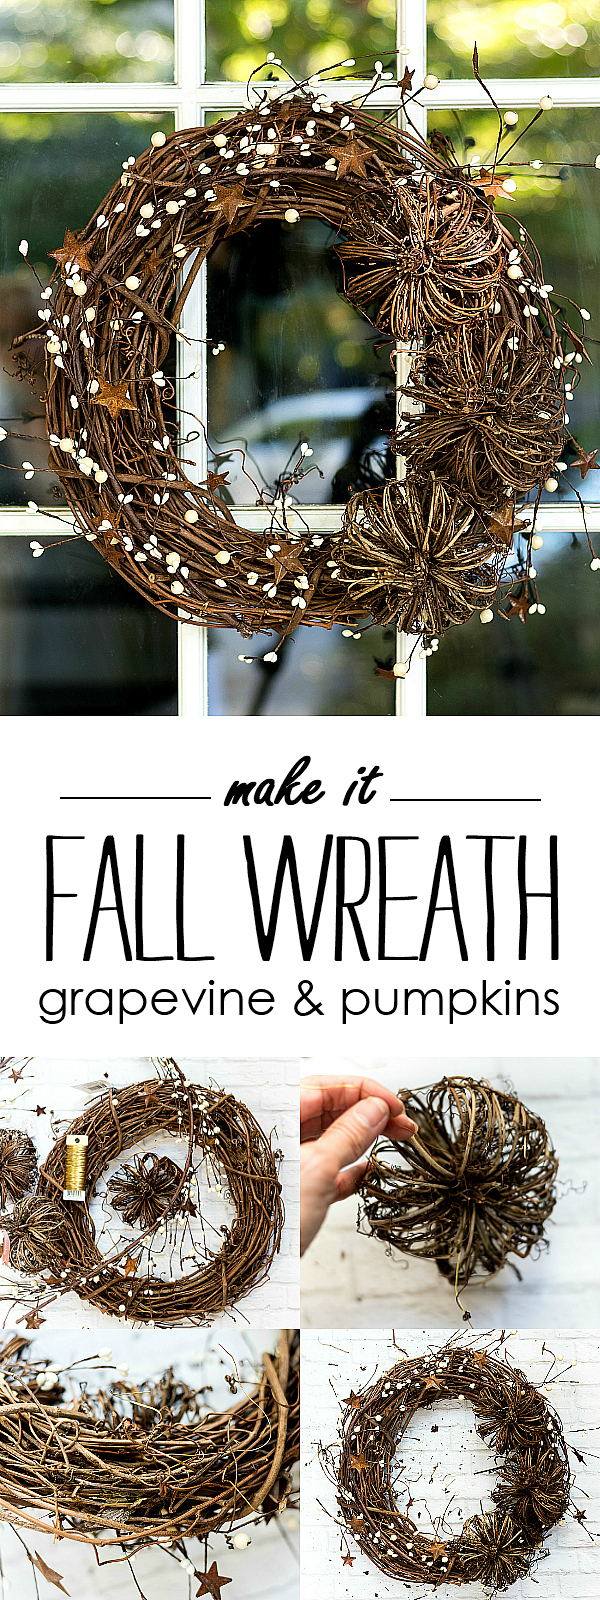 Easy Fall Wreath DIY - Grapevine & Pumpkin Rustic, Natural Wreath for Fall @ITALLSTARTEDWITHPAINT.com